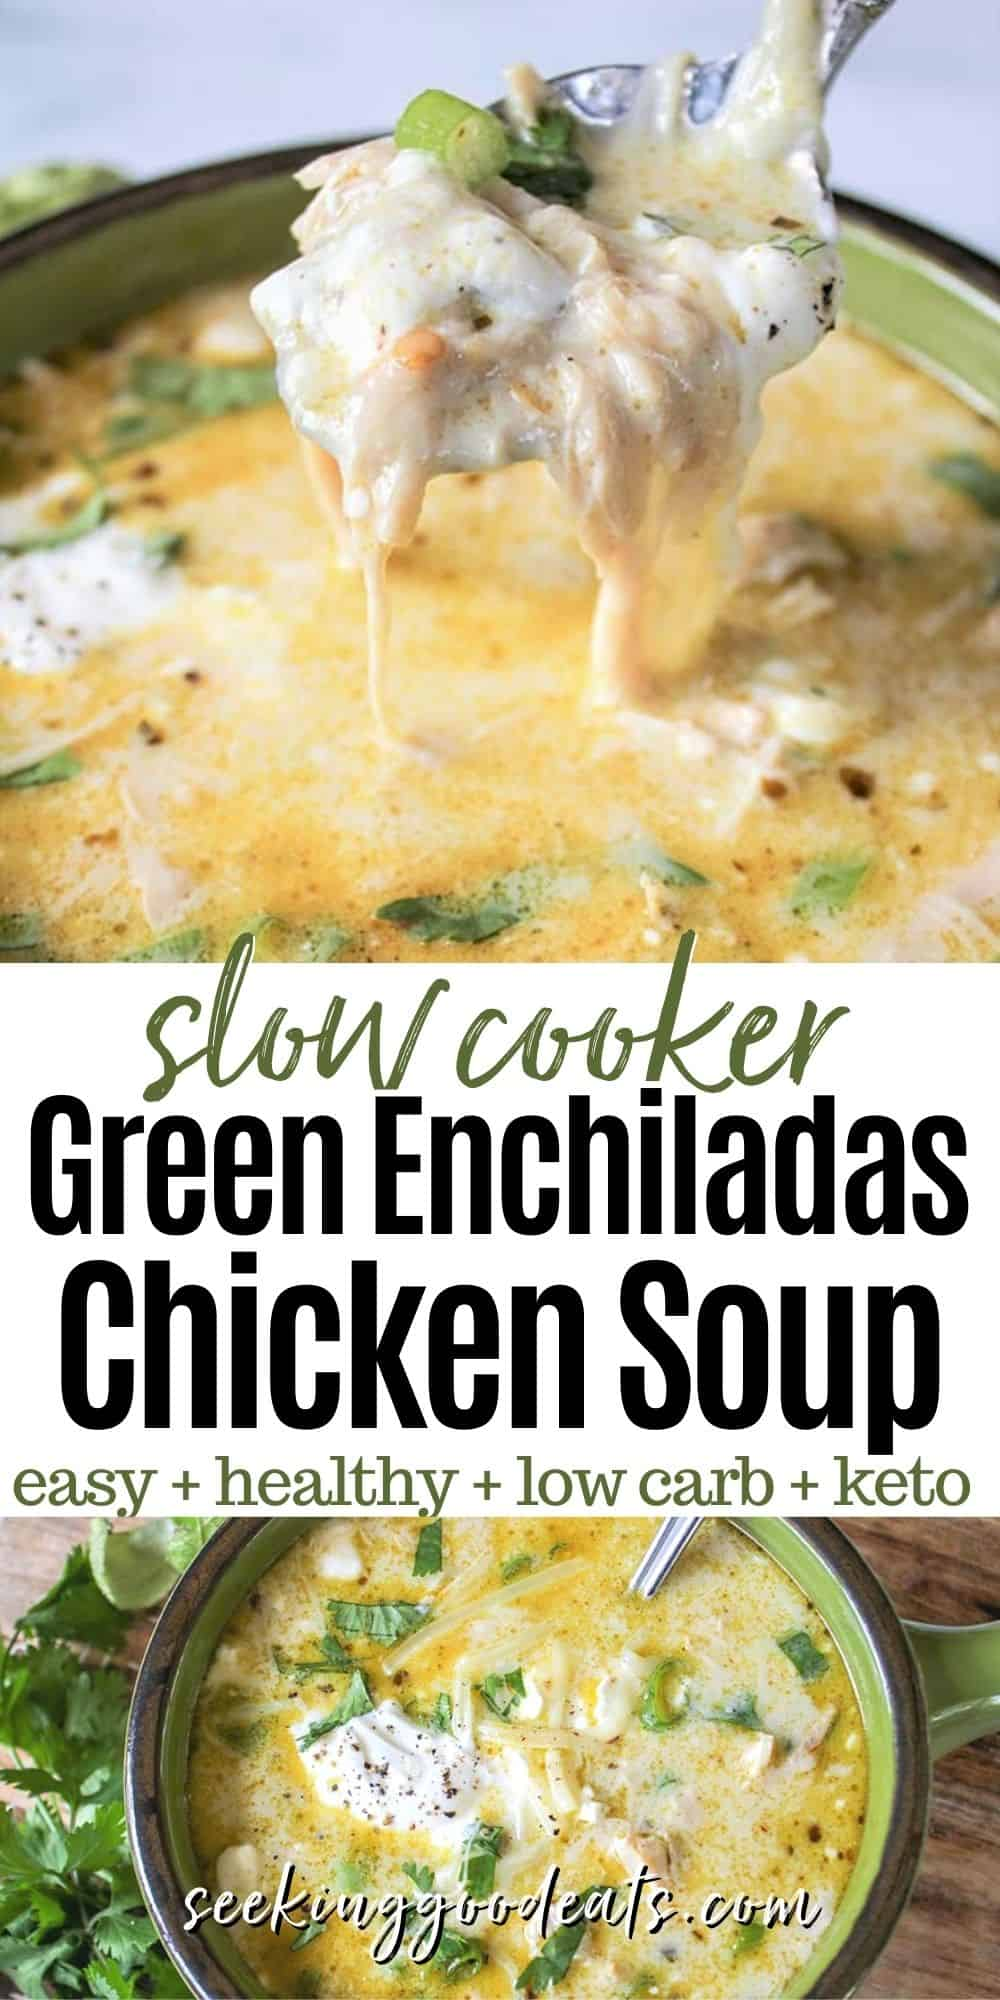 Green Enchiladas Chicken Soup (Keto Slow Cooker Mexican Soup)